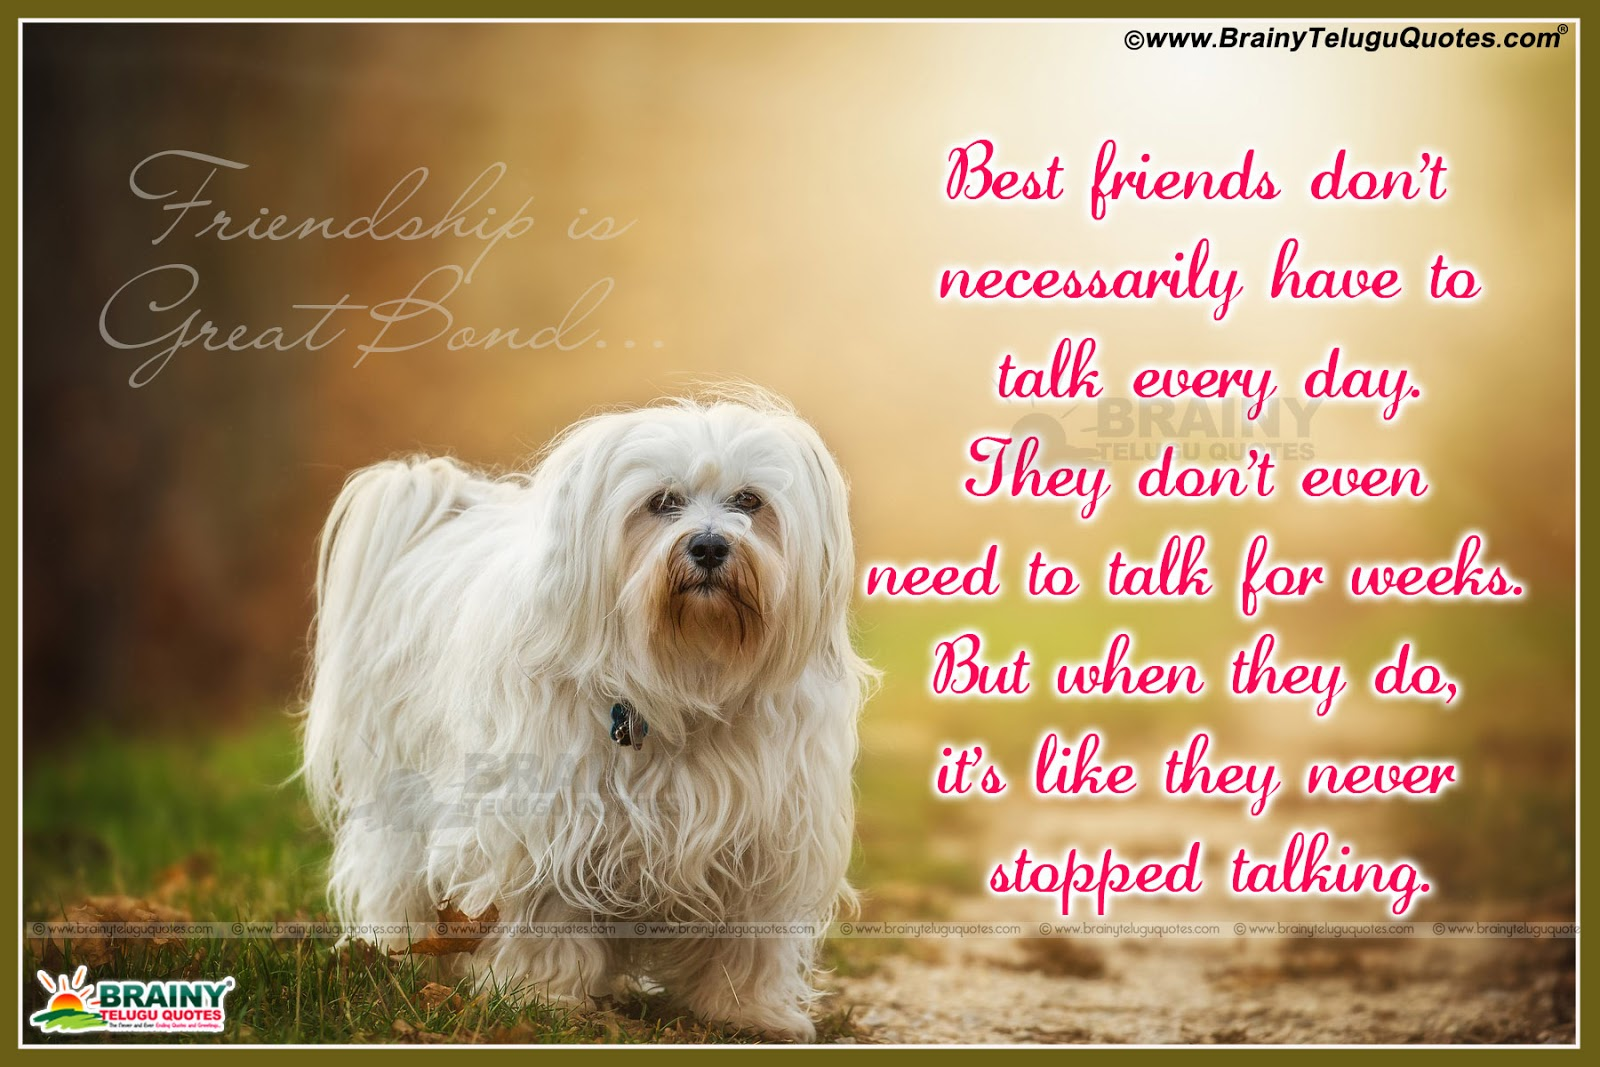 Nice friendship quotes with images